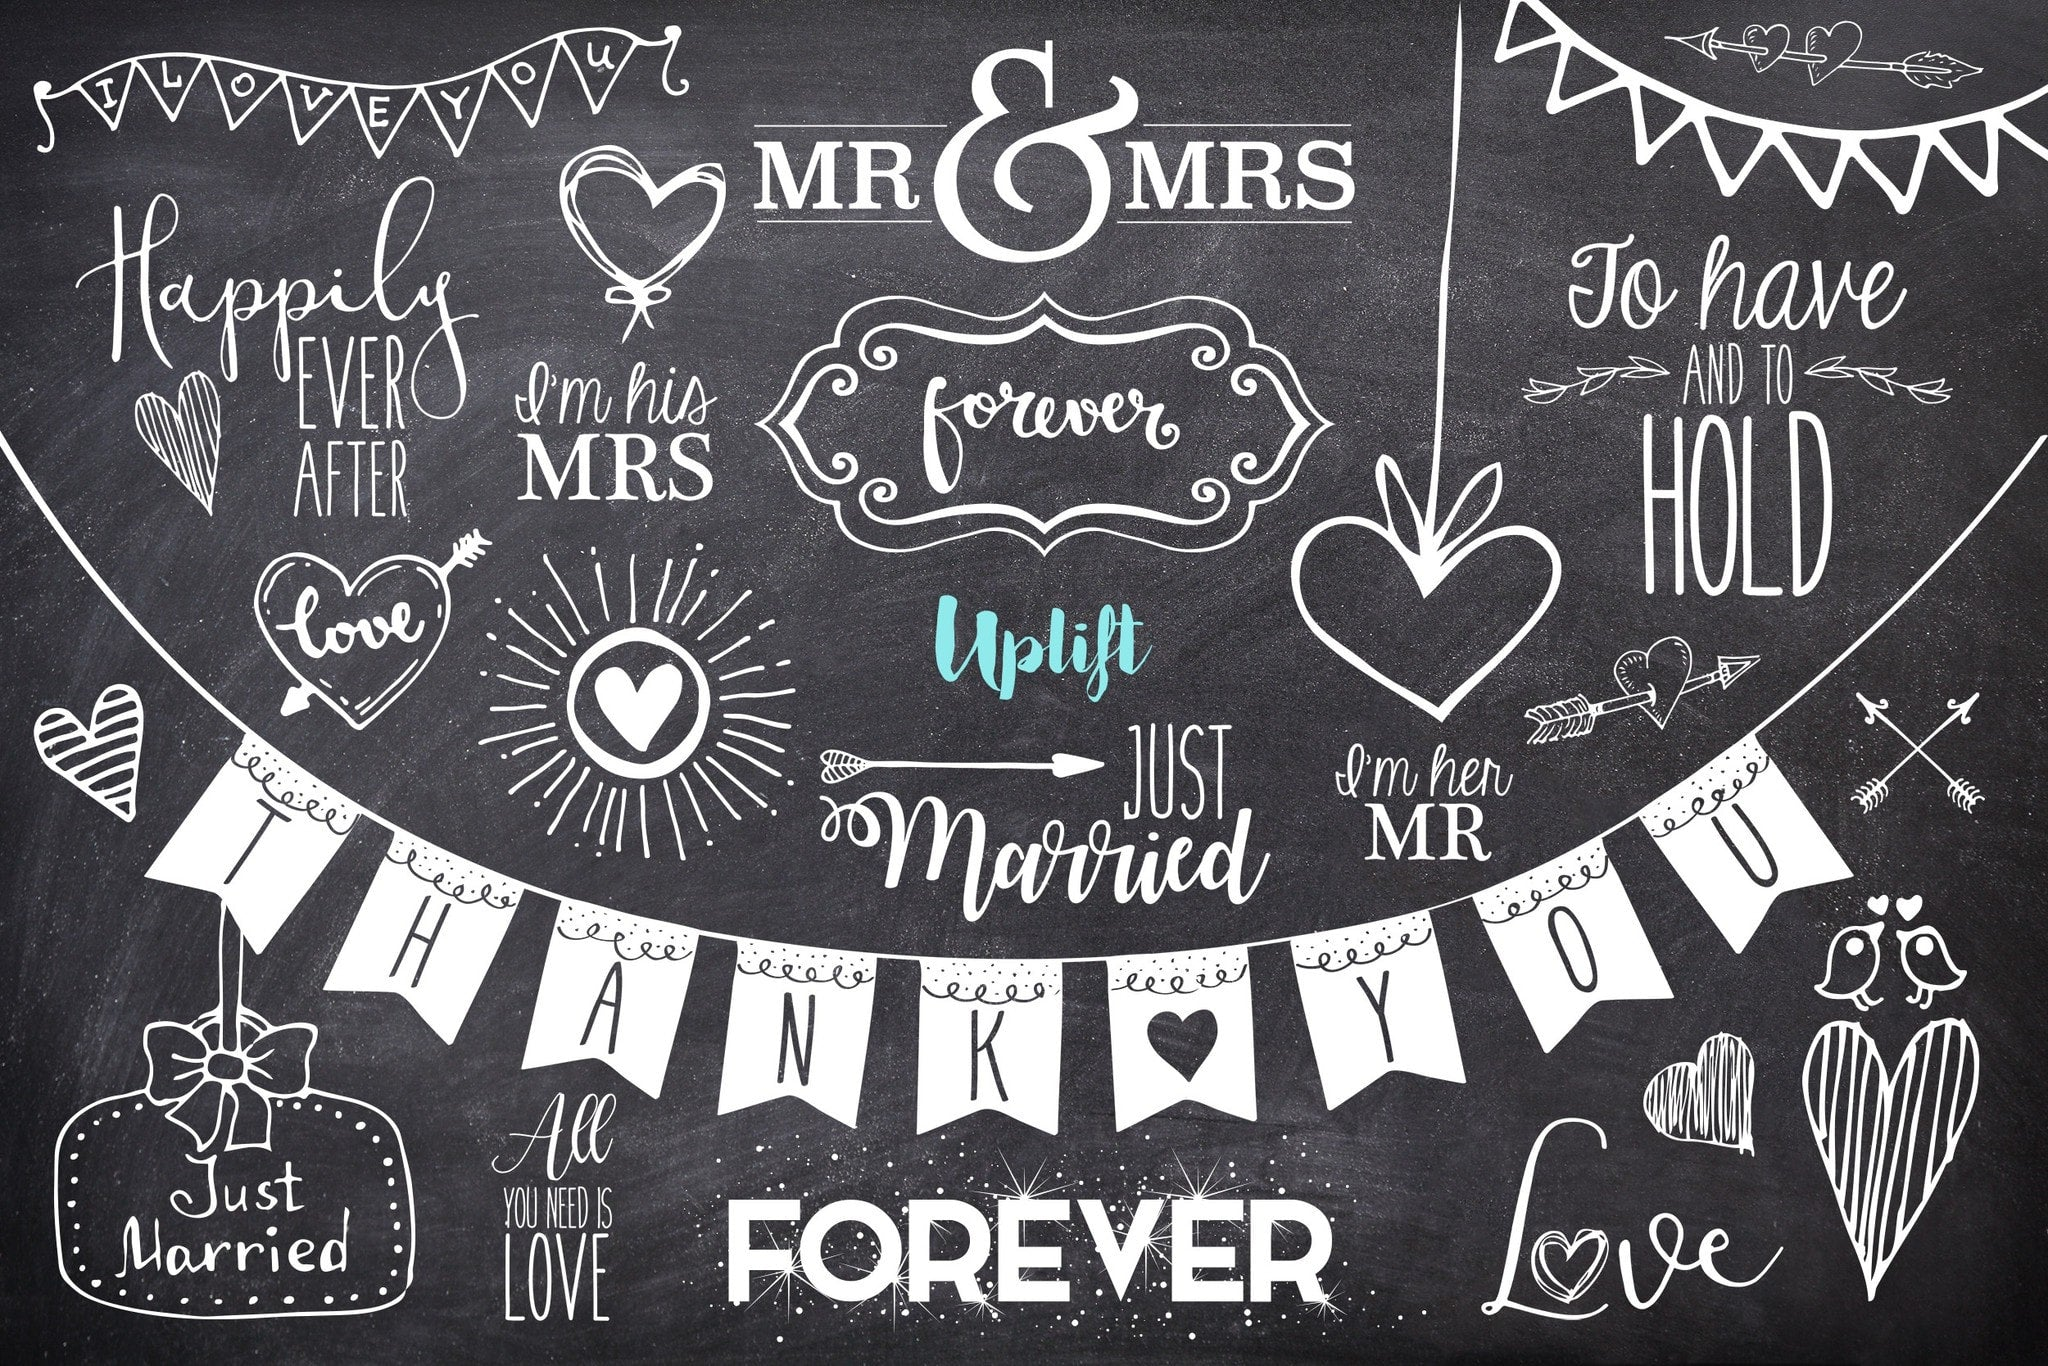 happily ever after wedding overlays uplift photoshop actions